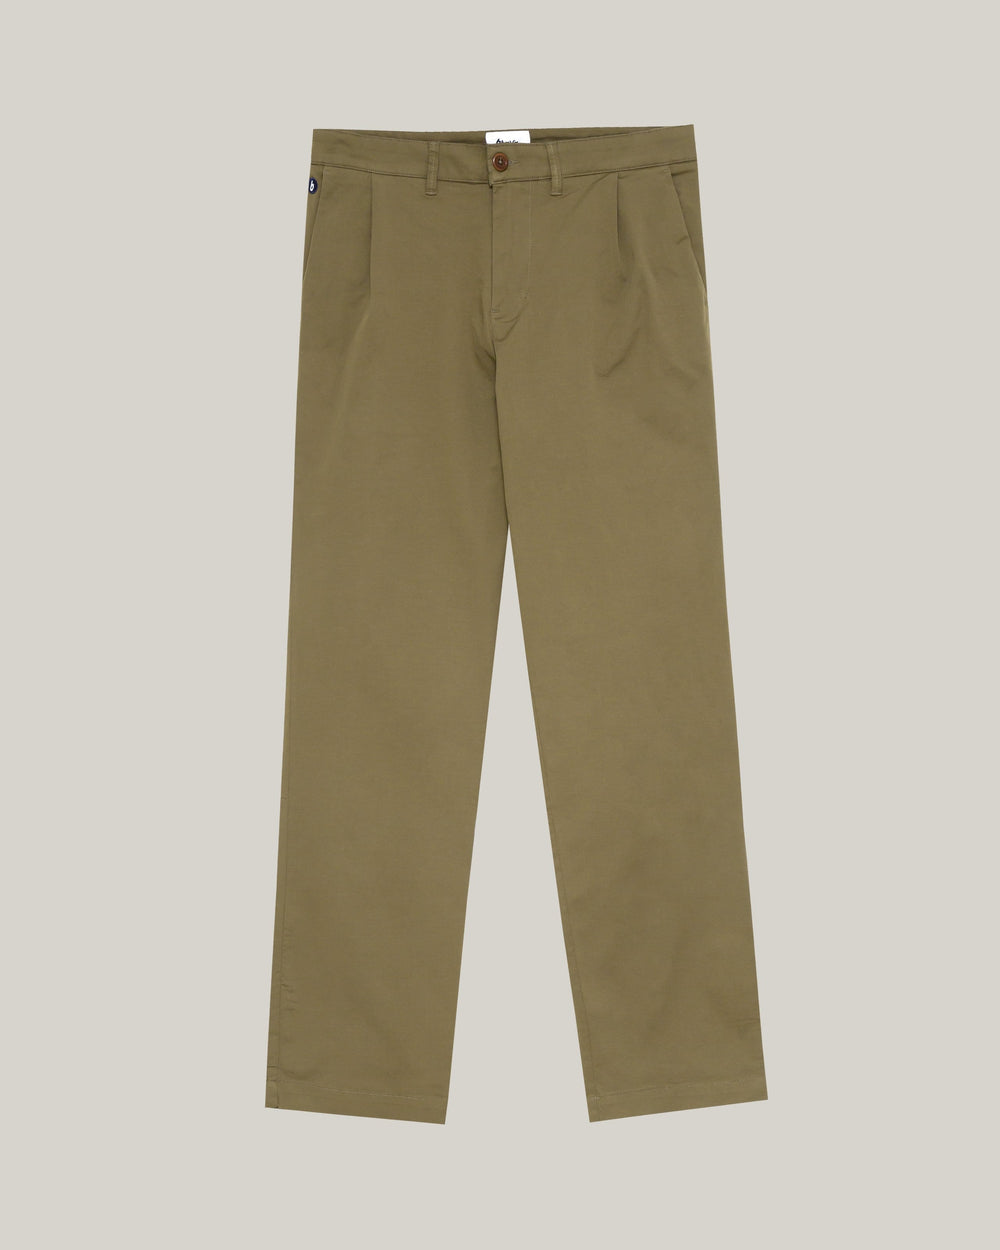 Brava Fabrics Trousers Chino Pleated Chino Camel